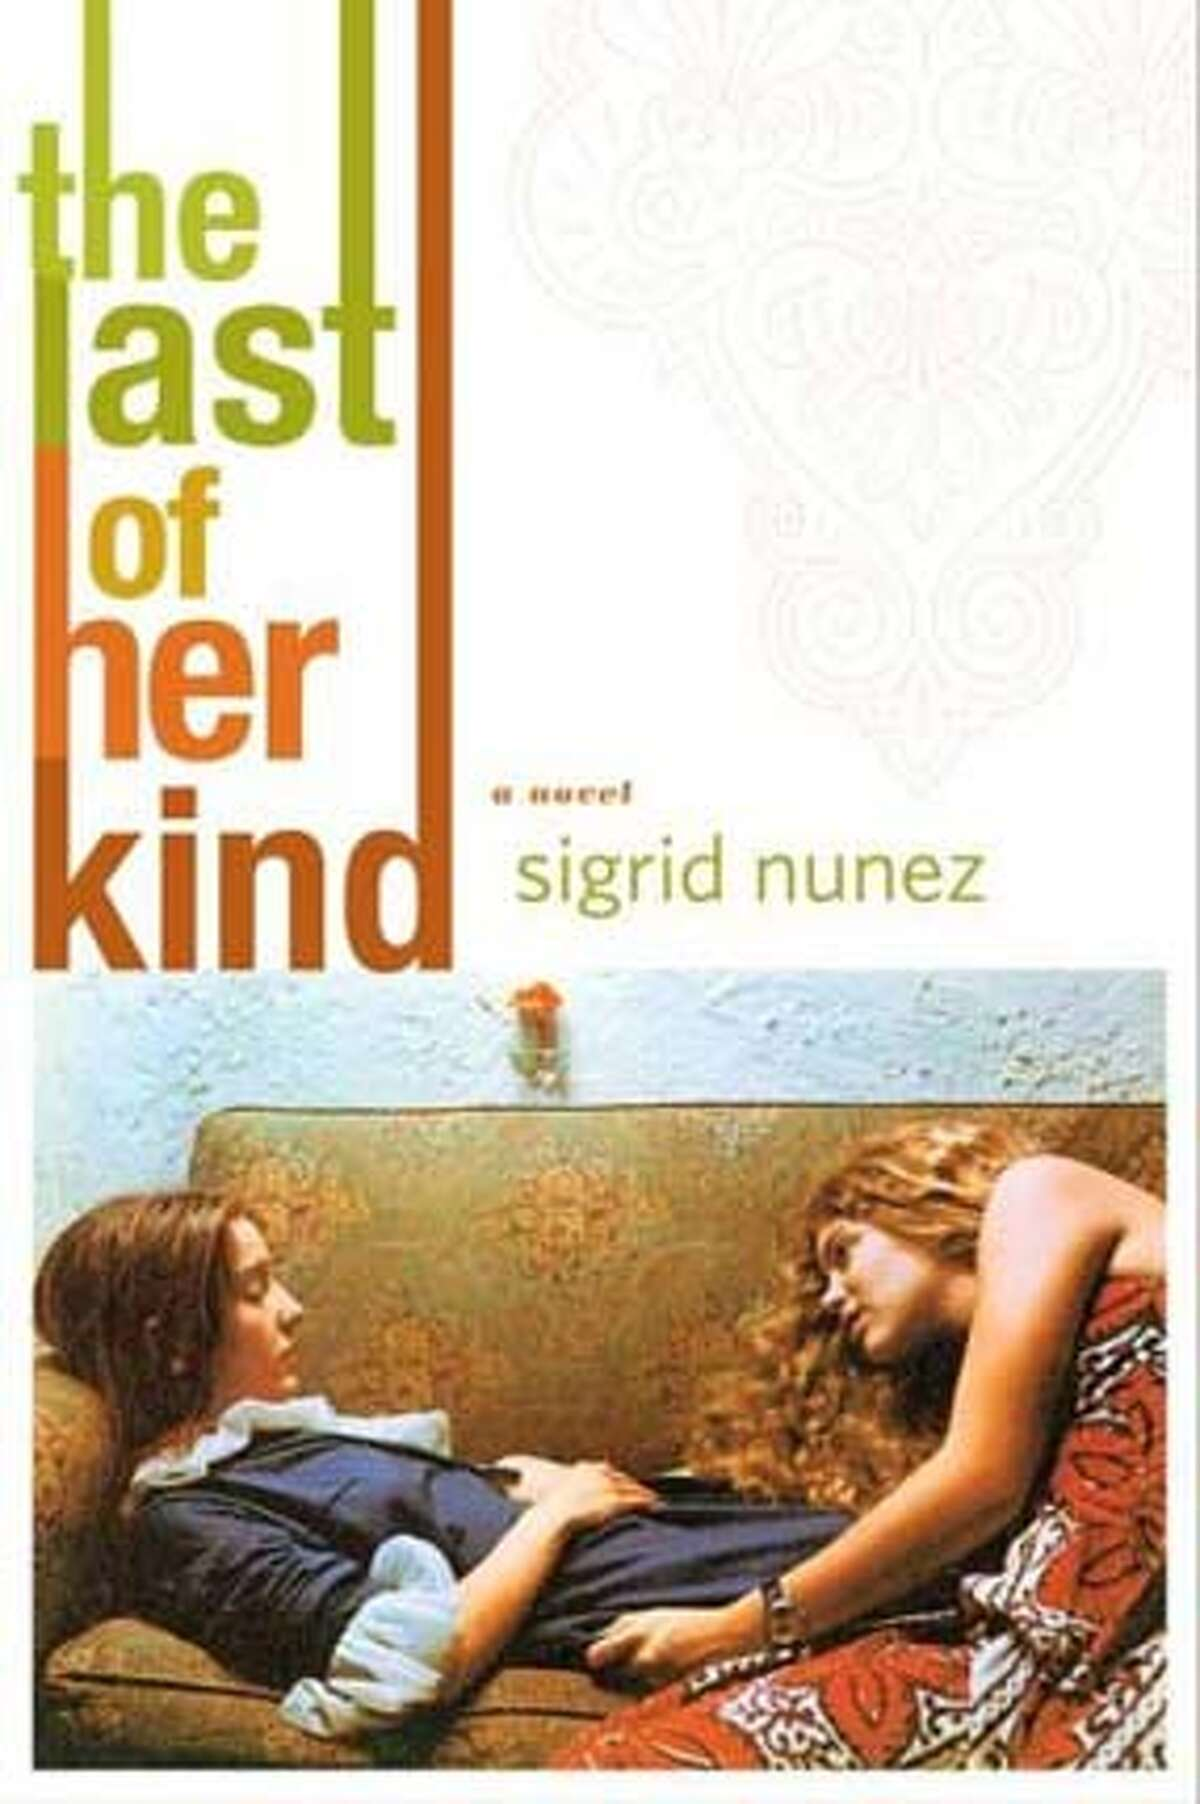 Book cover art for, The Last of Her Kind : A Novel by Sigrid Nunez. ALSO Ran on: 01-22-2006 Ran on: 01-29-2006